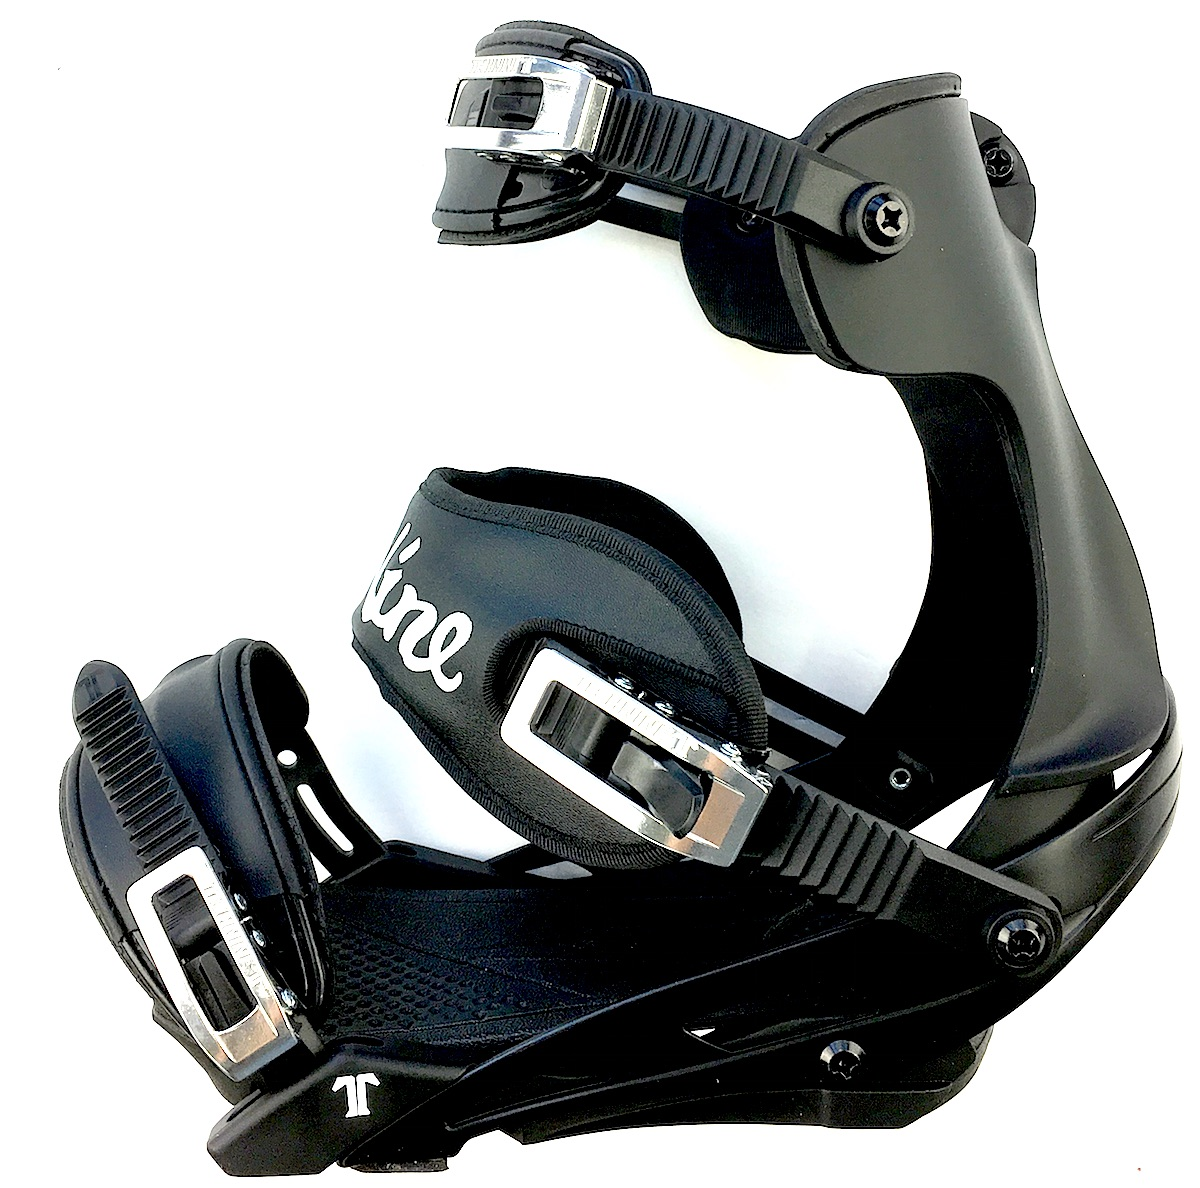 Technine Custom Pro DS Snowboard Bindings for Skiboards